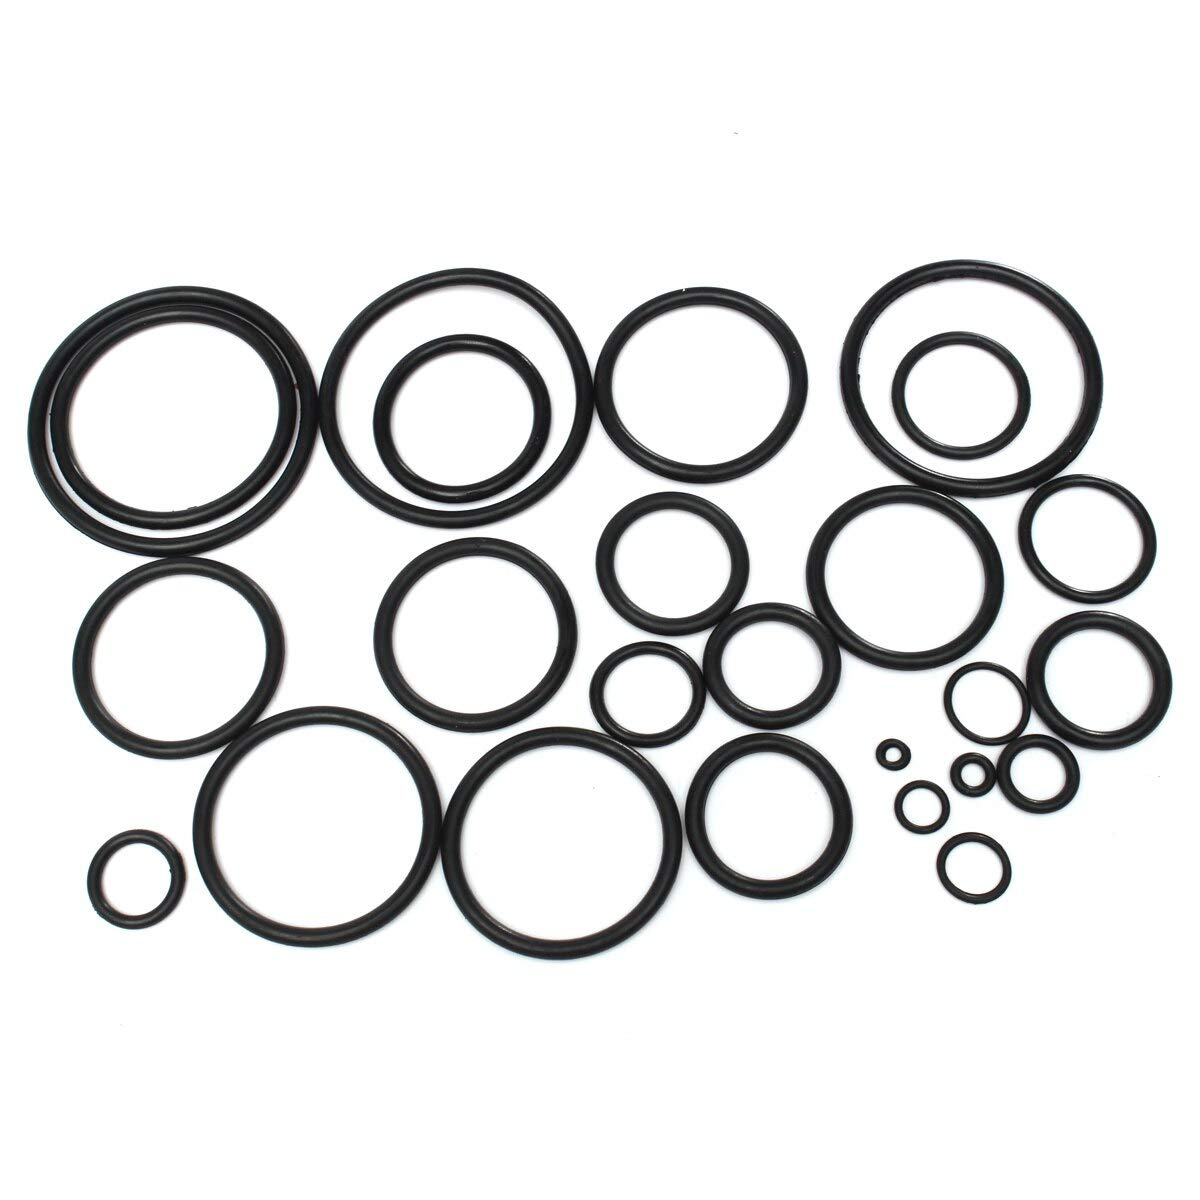 Gimax 419Pcs O Ring Rubber Seal Assortment Set Kit Garage Plumbing with Case for General Plumbers Mechanics Workshop Assorted kit by GIMAX (Image #6)